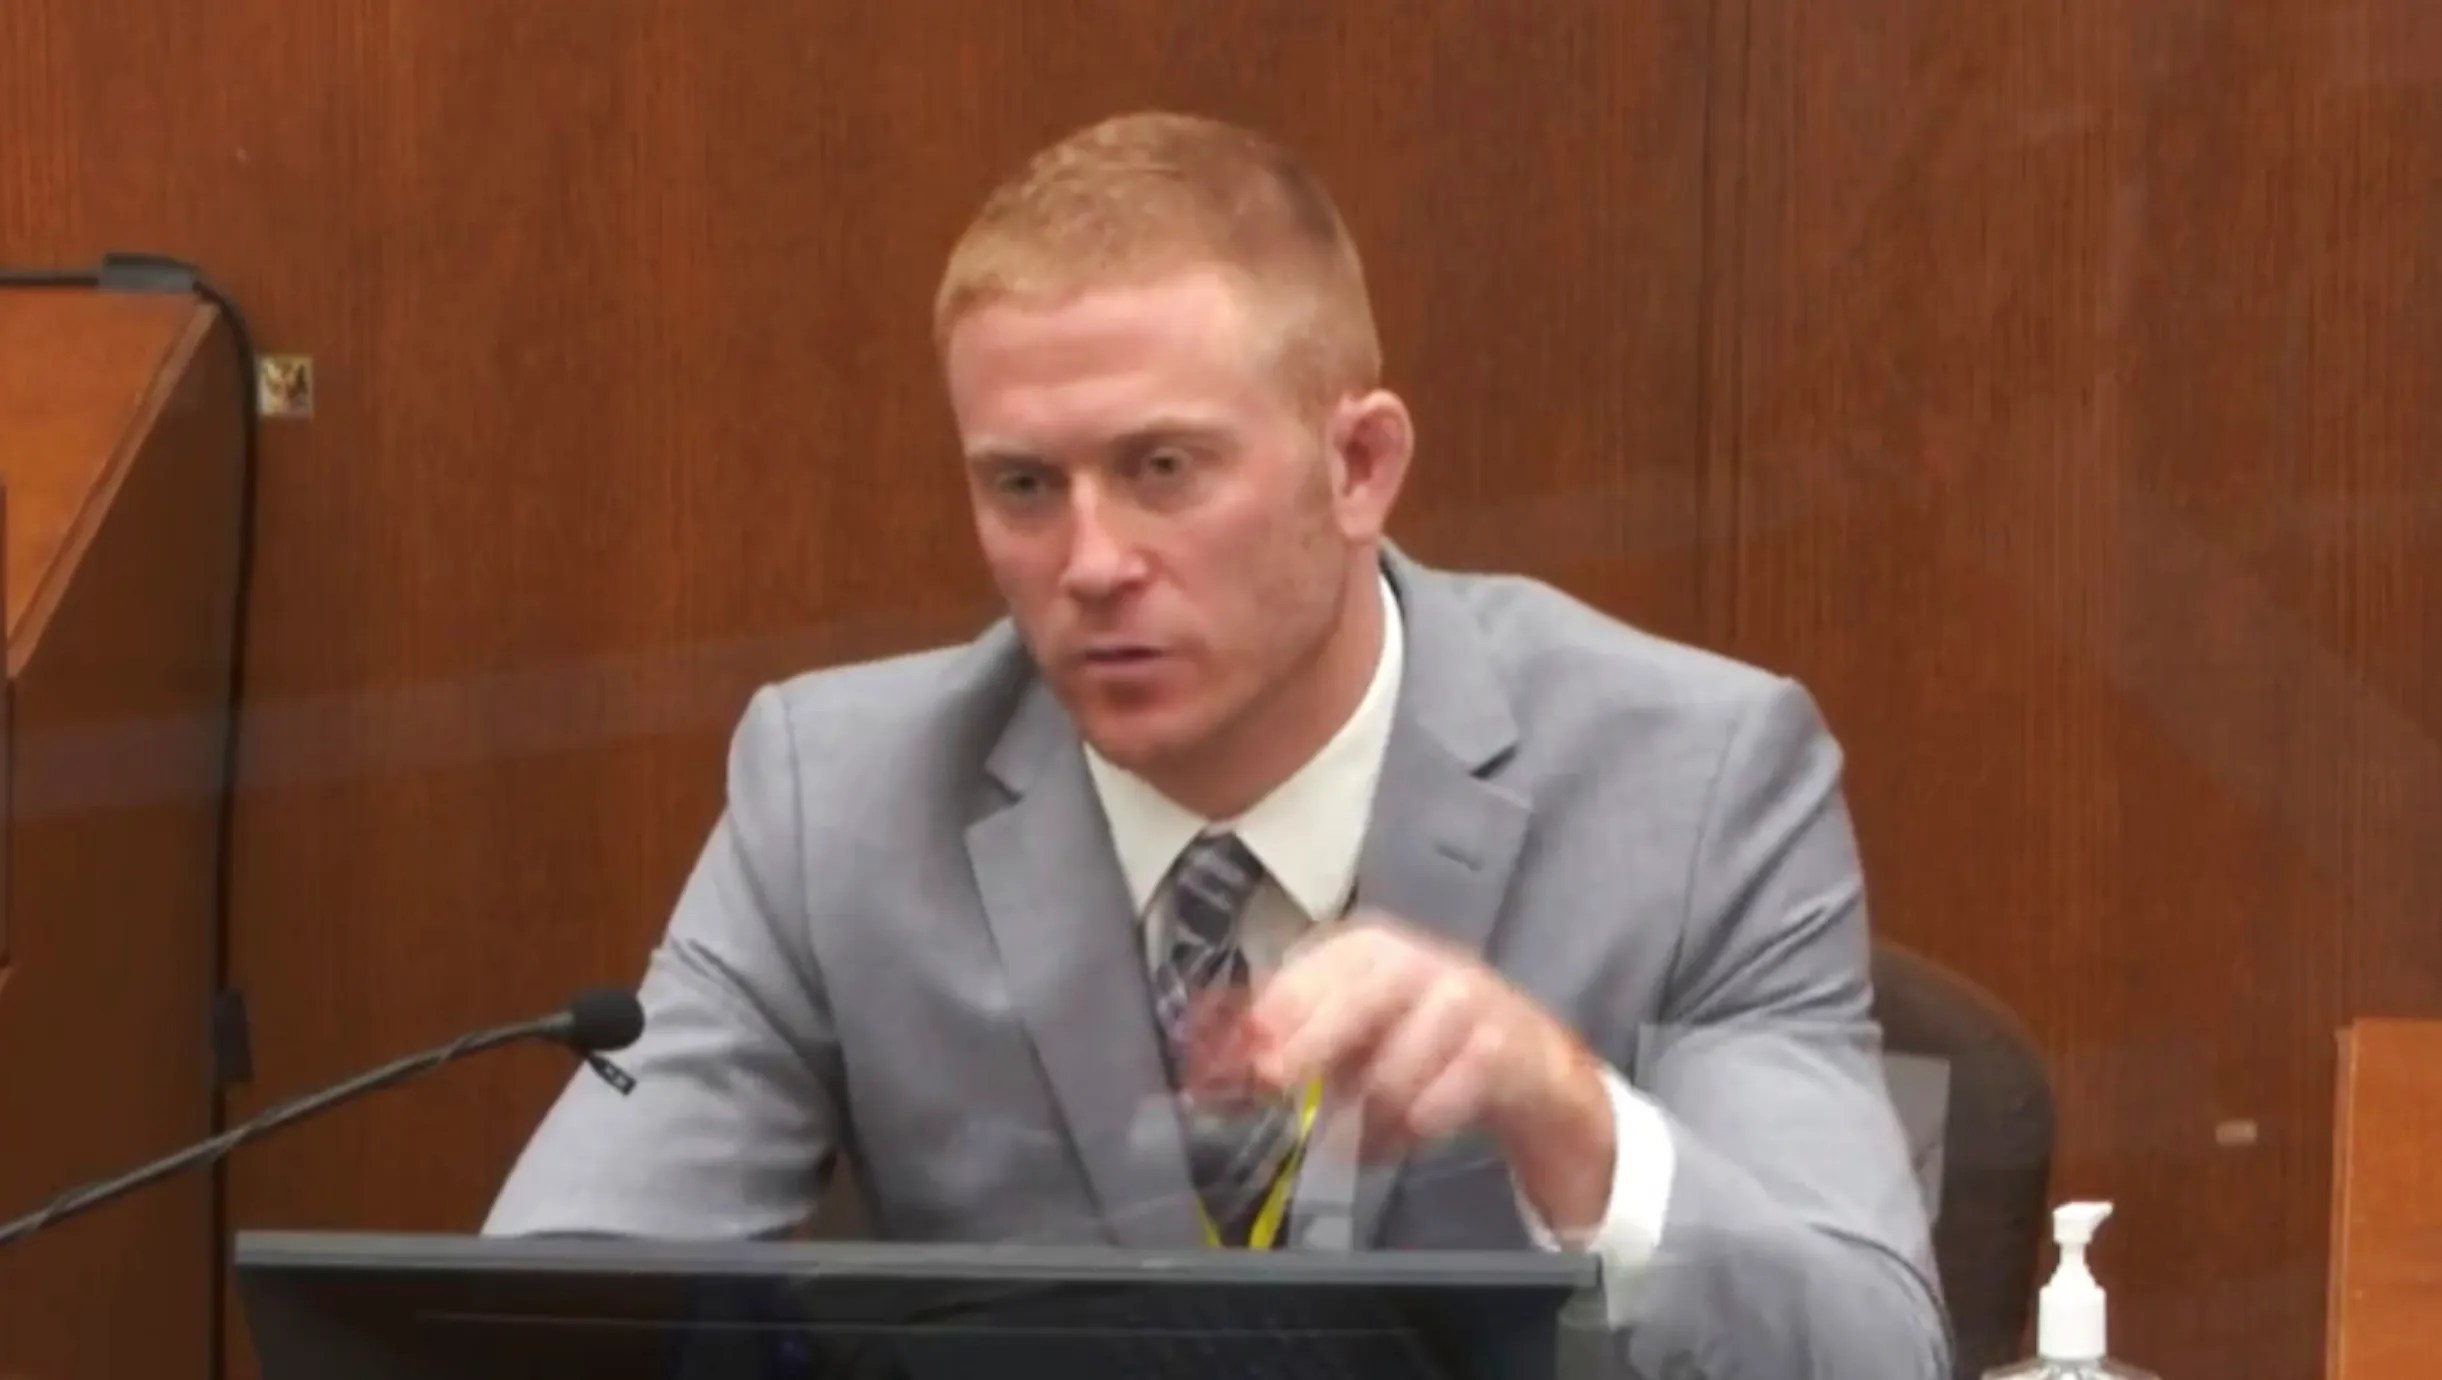 Derek Smith, a paramedic with Hennepin County EMS, testified Thursday.